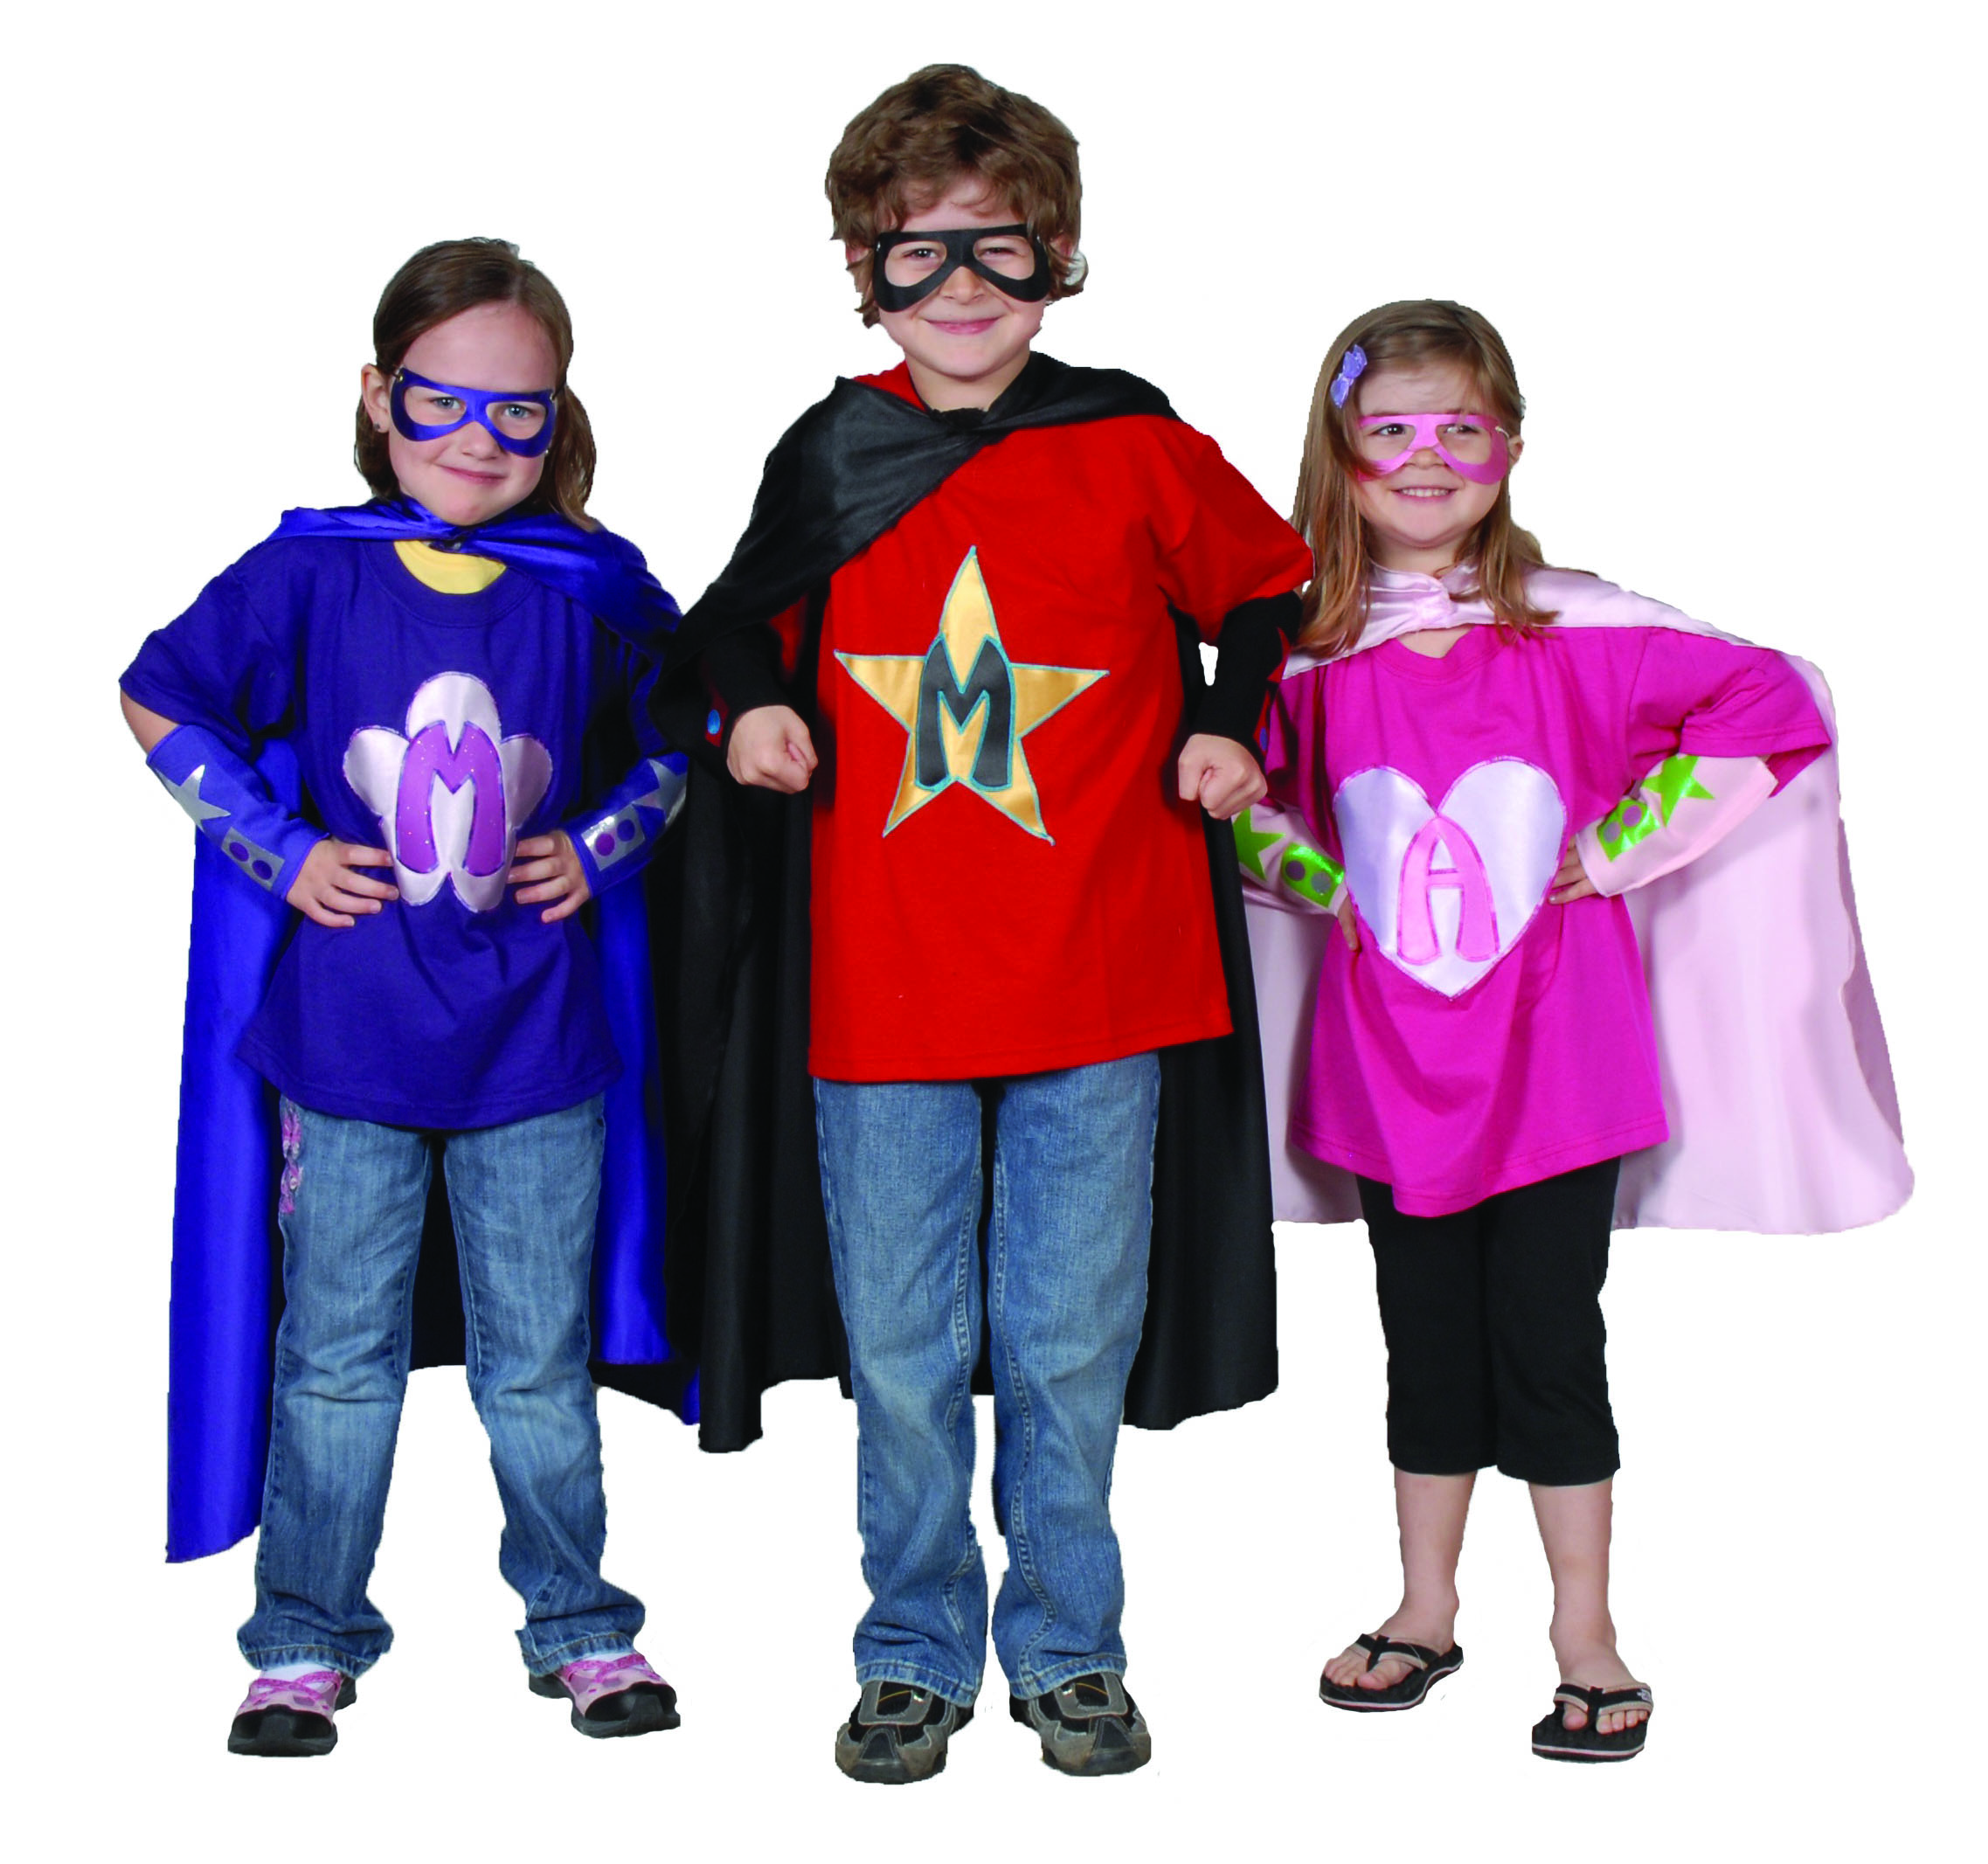 Kids dressed in superhero costumes.